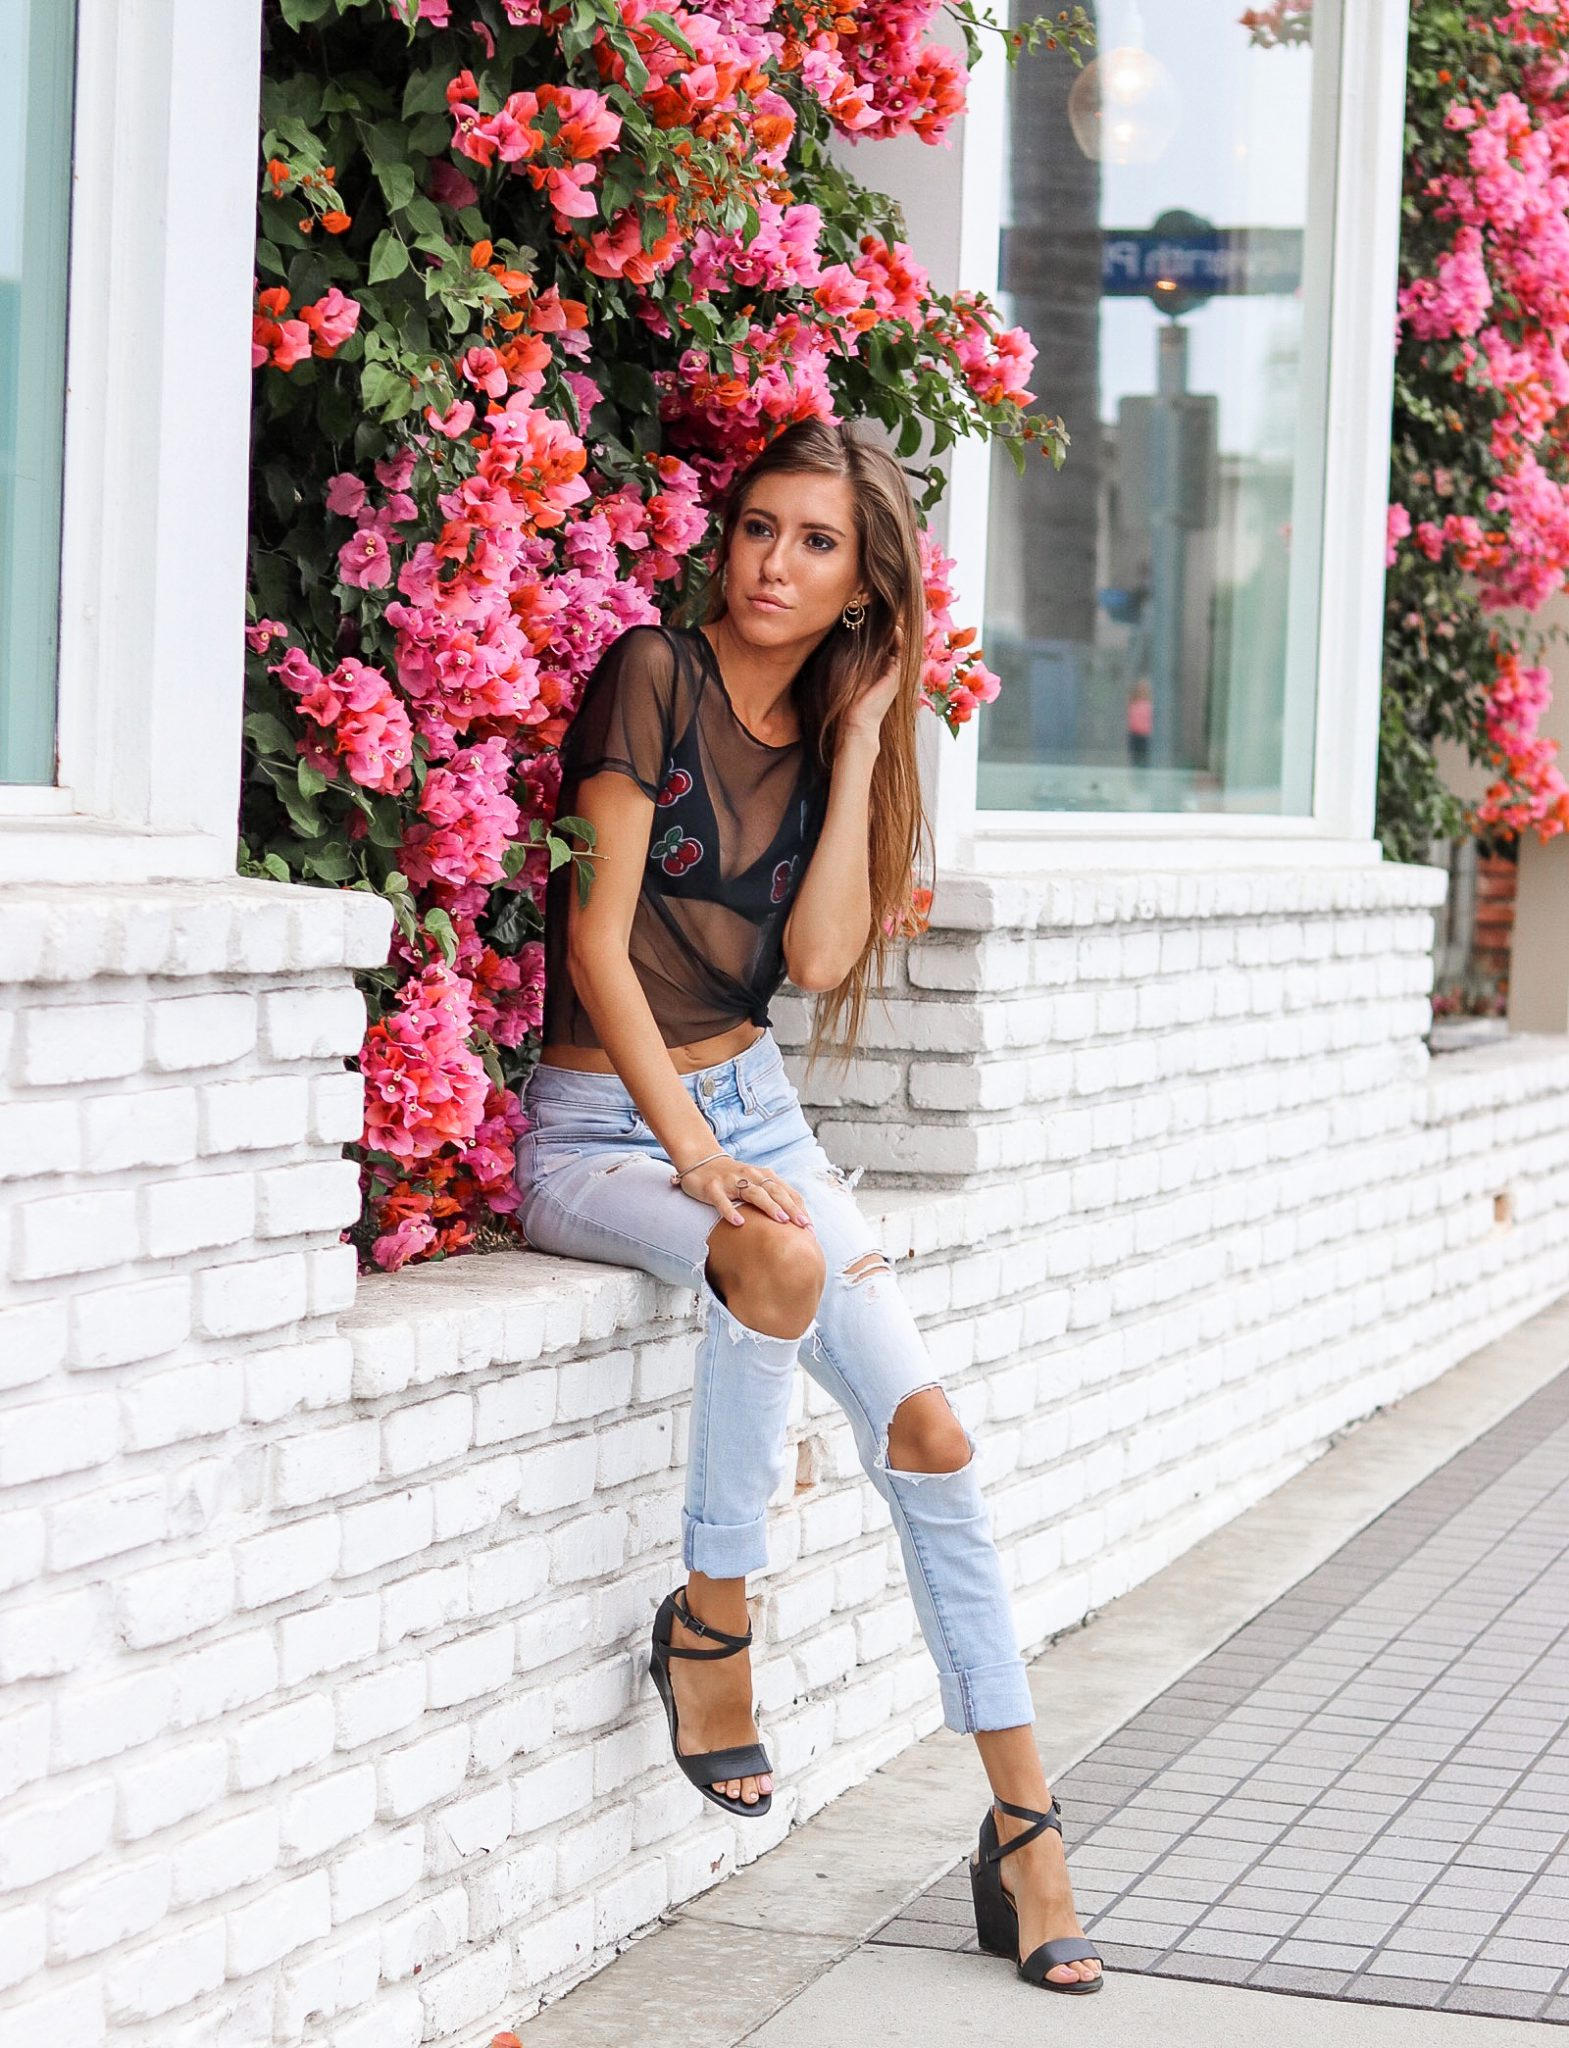 The-Hungarian-Brunette-Outfit-Inspo-OOTD-7-of-58.jpg